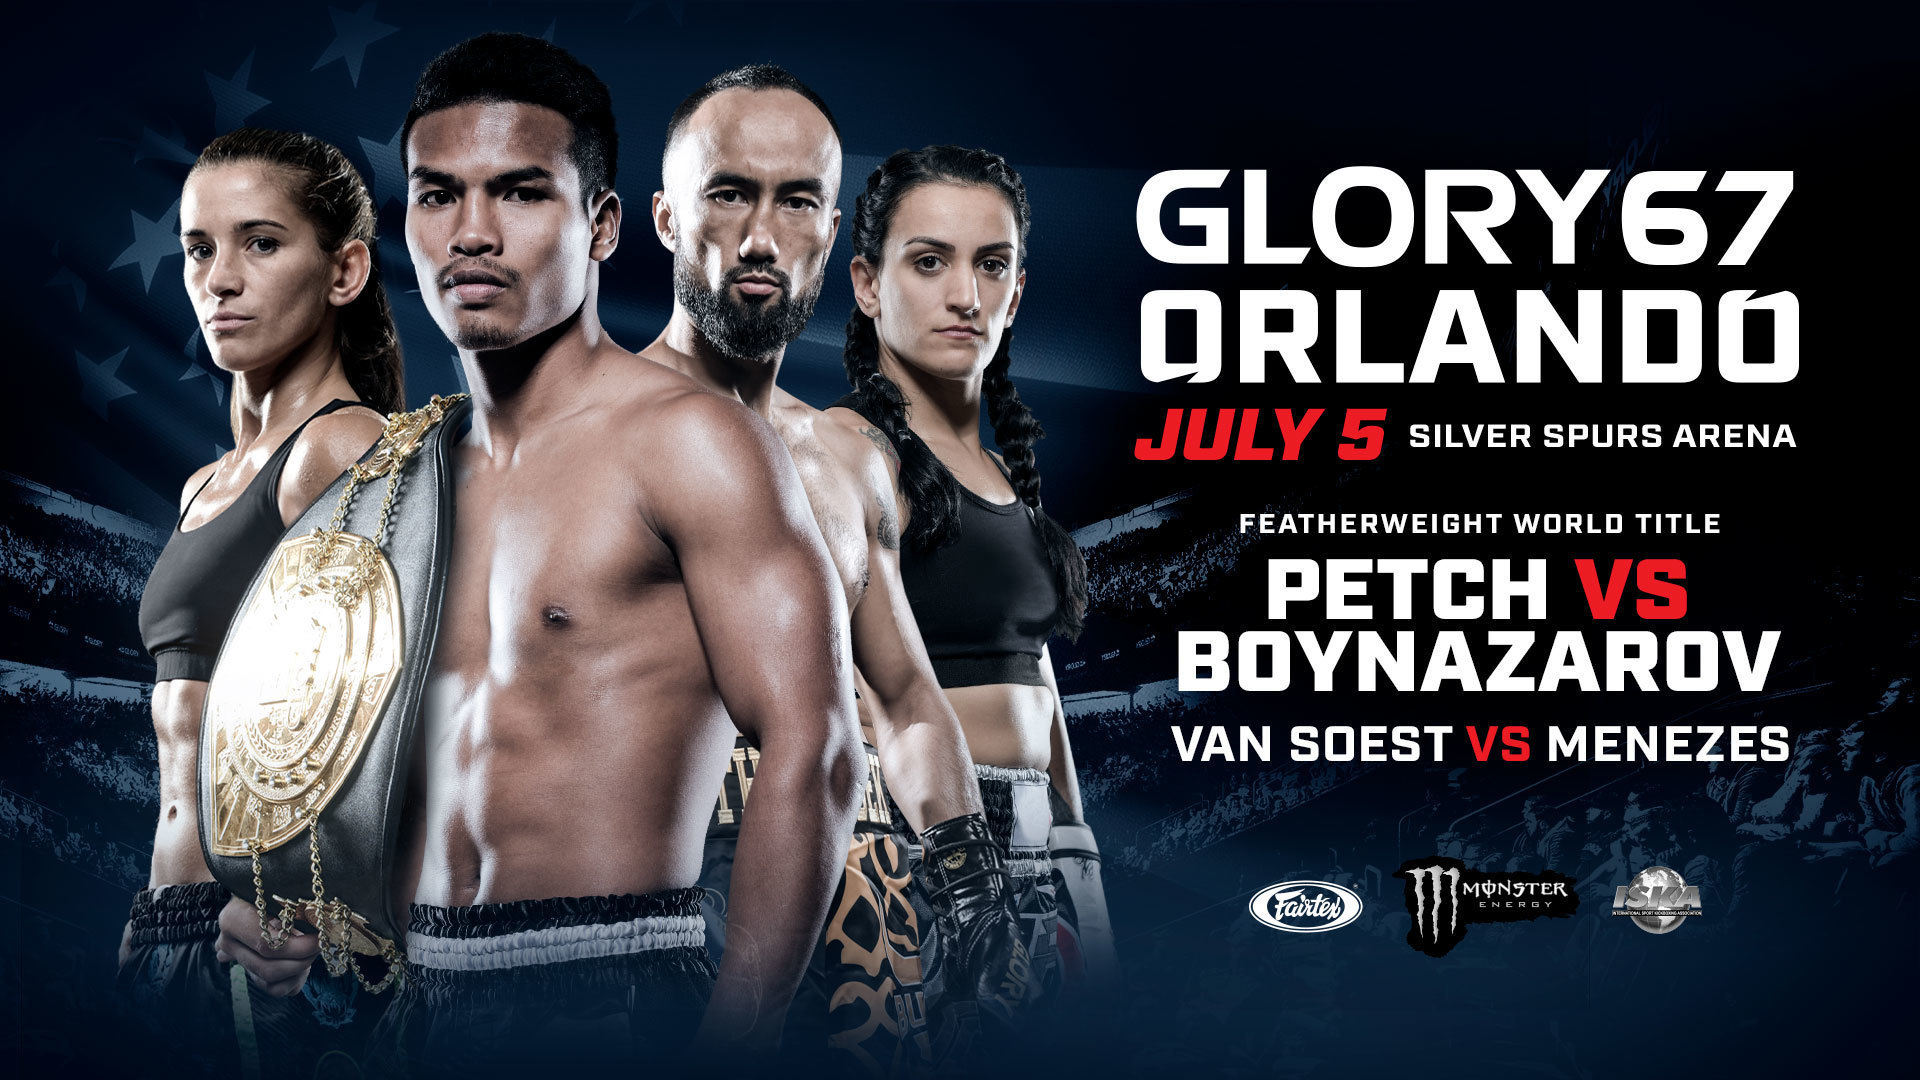 Media accreditation for GLORY 67 ORLANDO underway